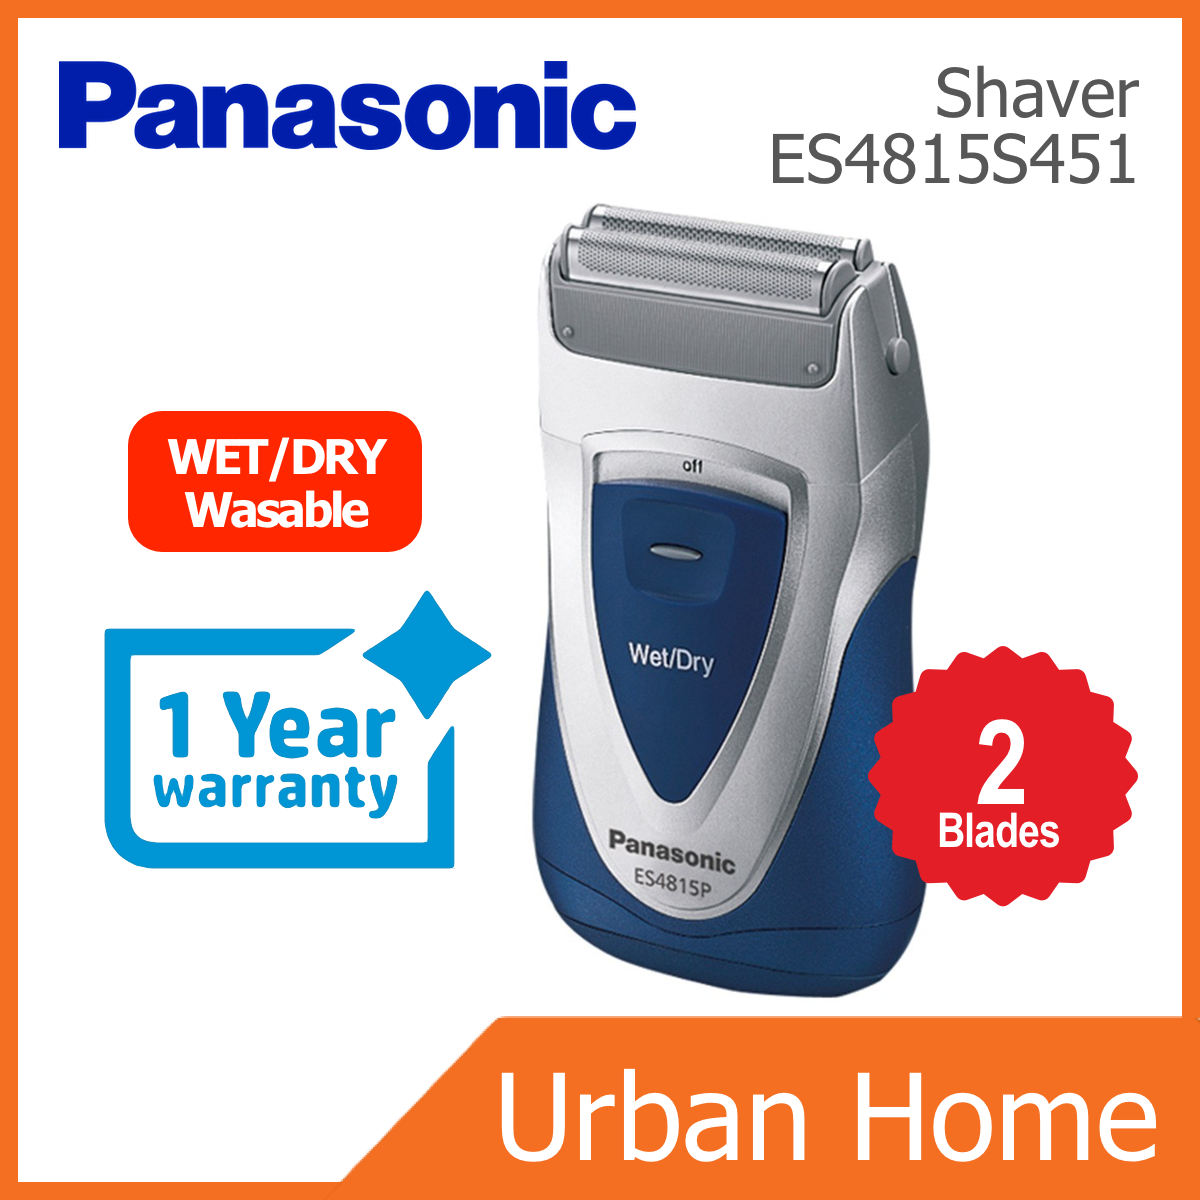 PANASONIC Wet/Dry Washable Compact Shaver (ES4815S451/ES4815)